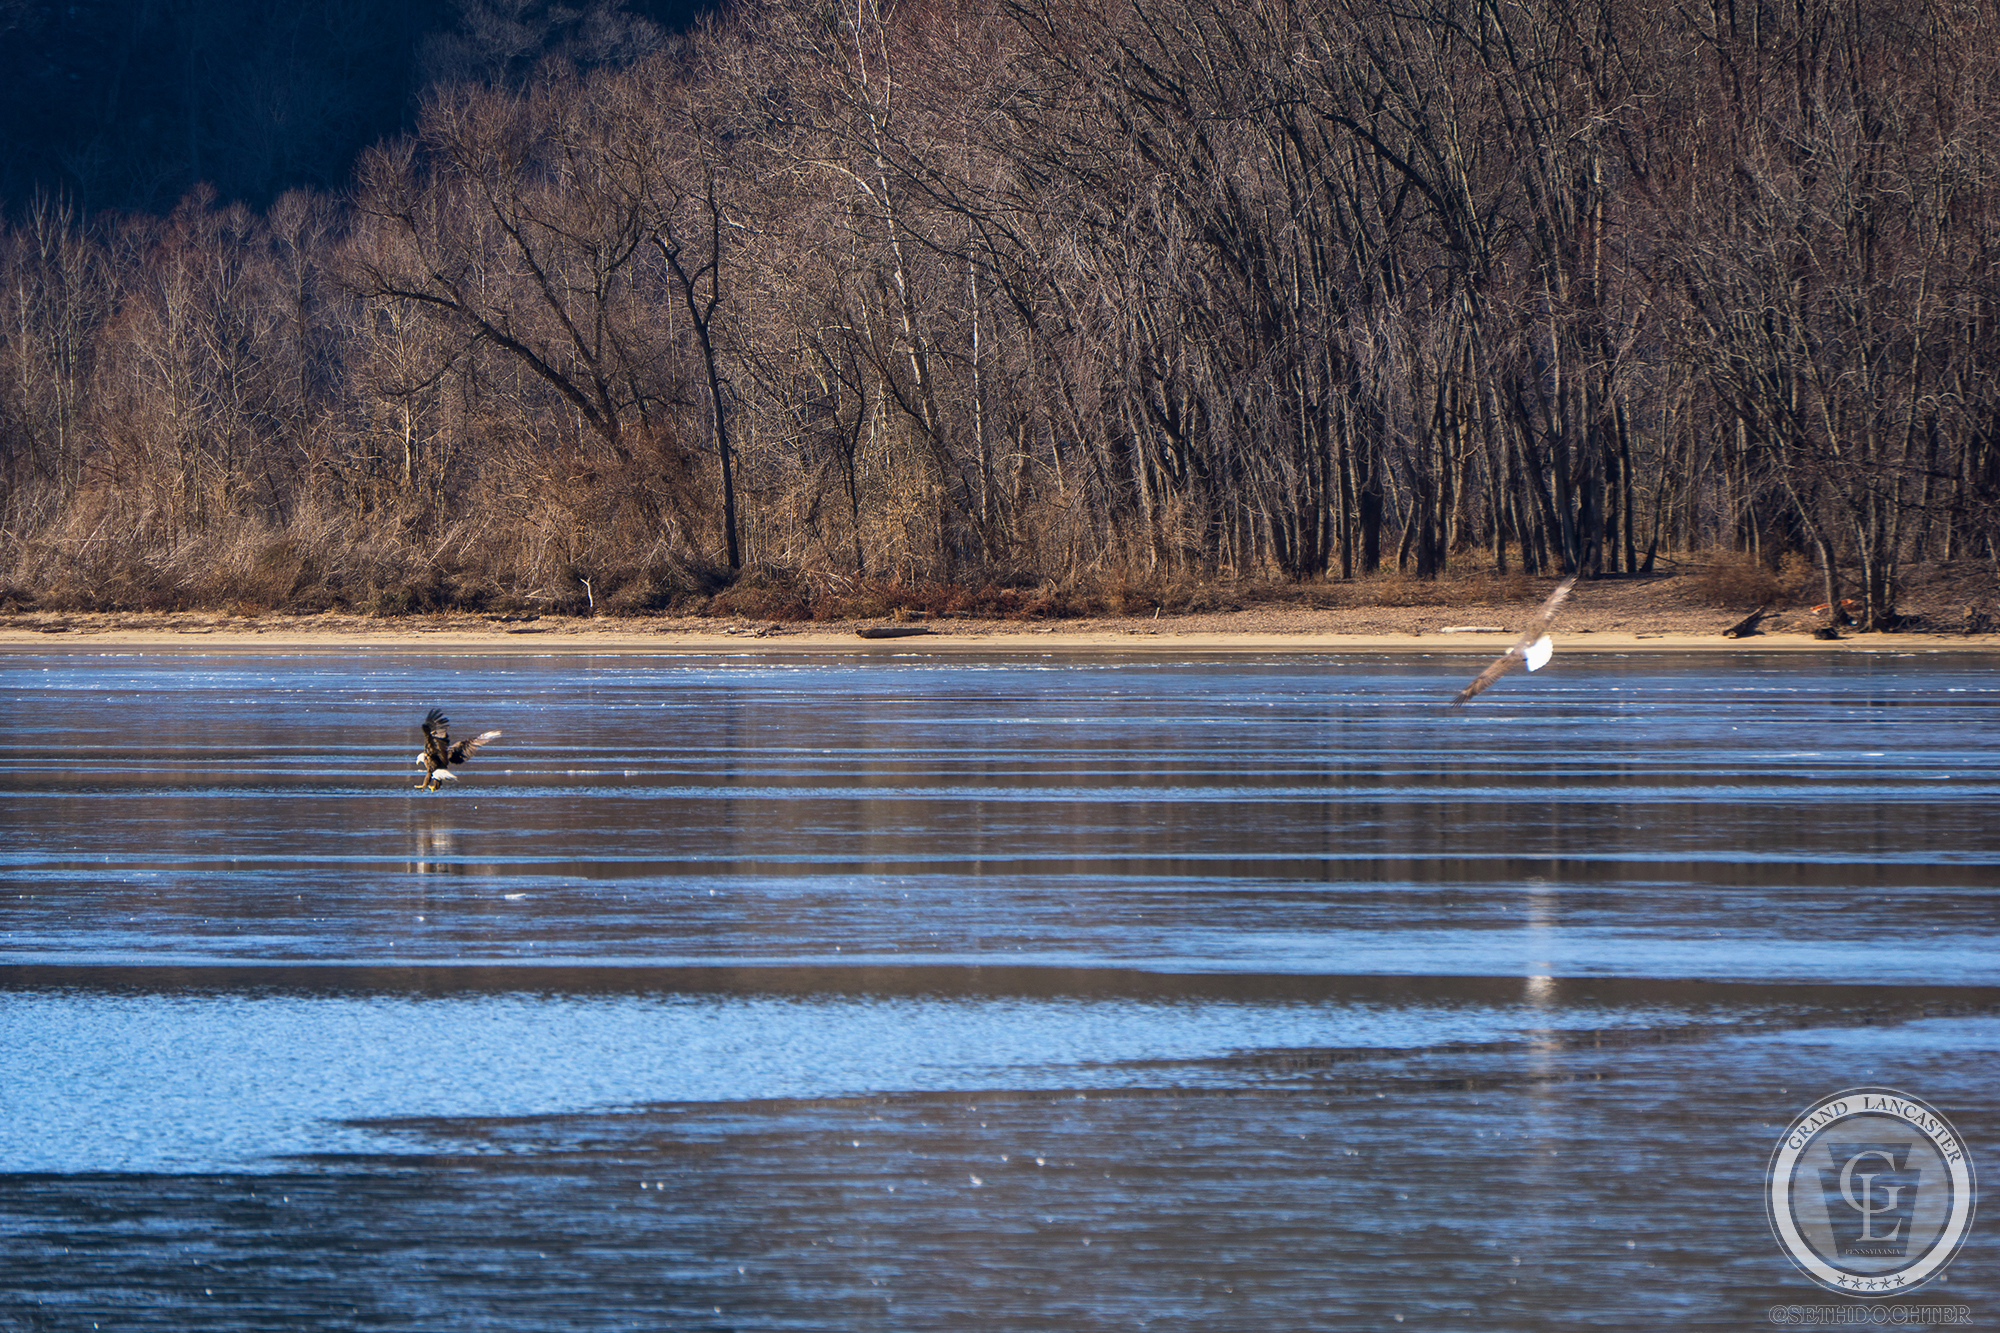 While stopping by the Pequea Boat Launch to capture the frozen Susquehanna River I could hear Eagles ... somewhere. After some time these two emerged with a younger third behind them. The two were quite playful chasing each other around the ice.